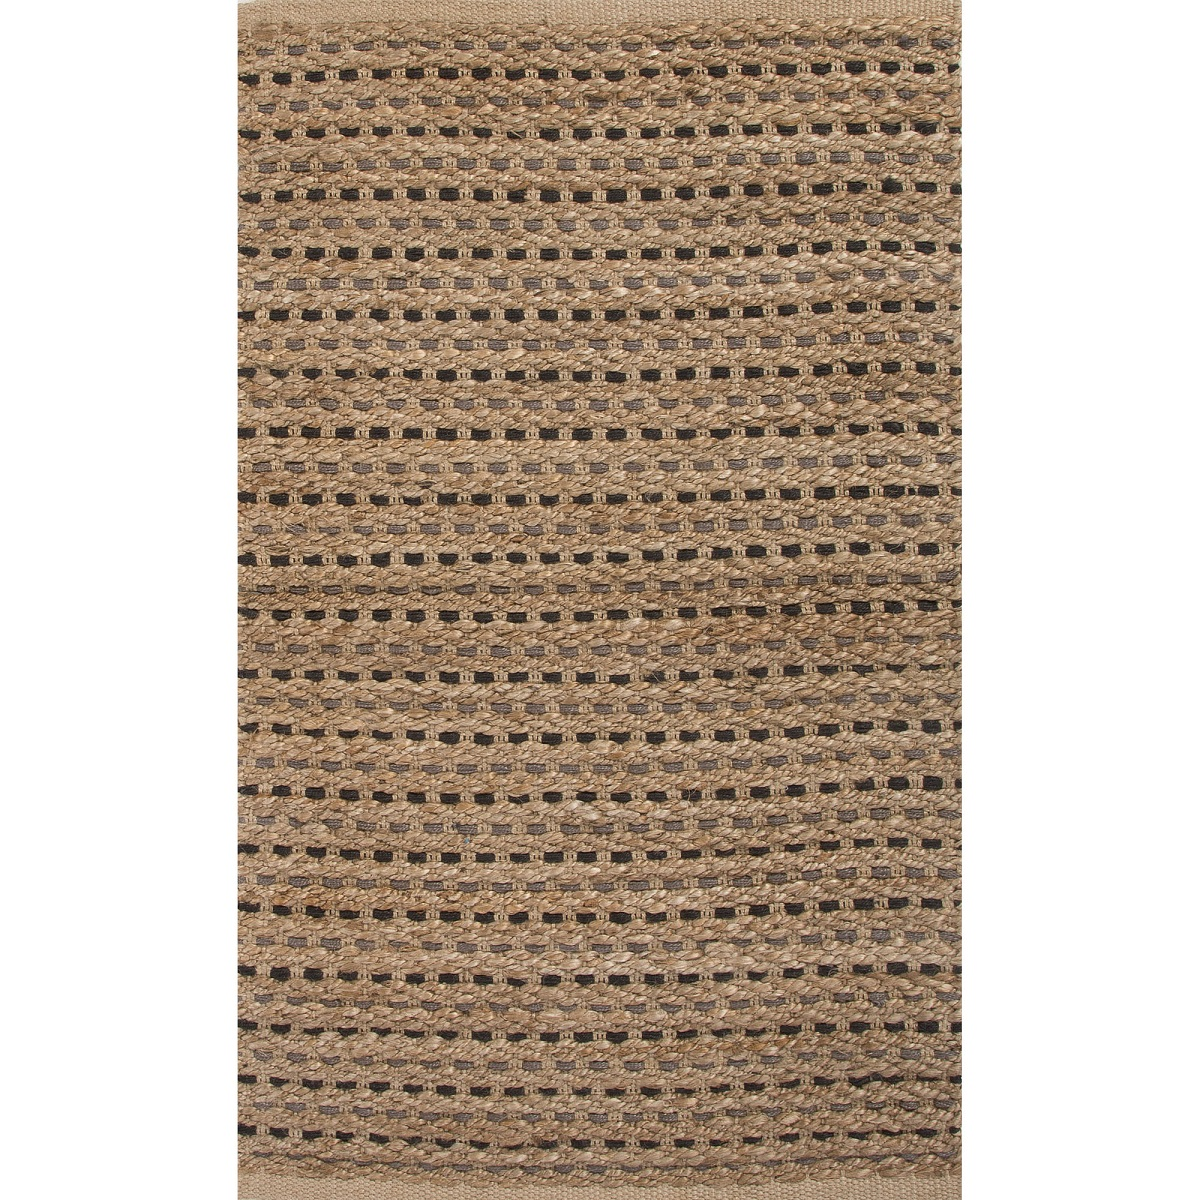 2' x 3.33' Wheat Tan and Gray Yarm Jute Accent Throw Rug